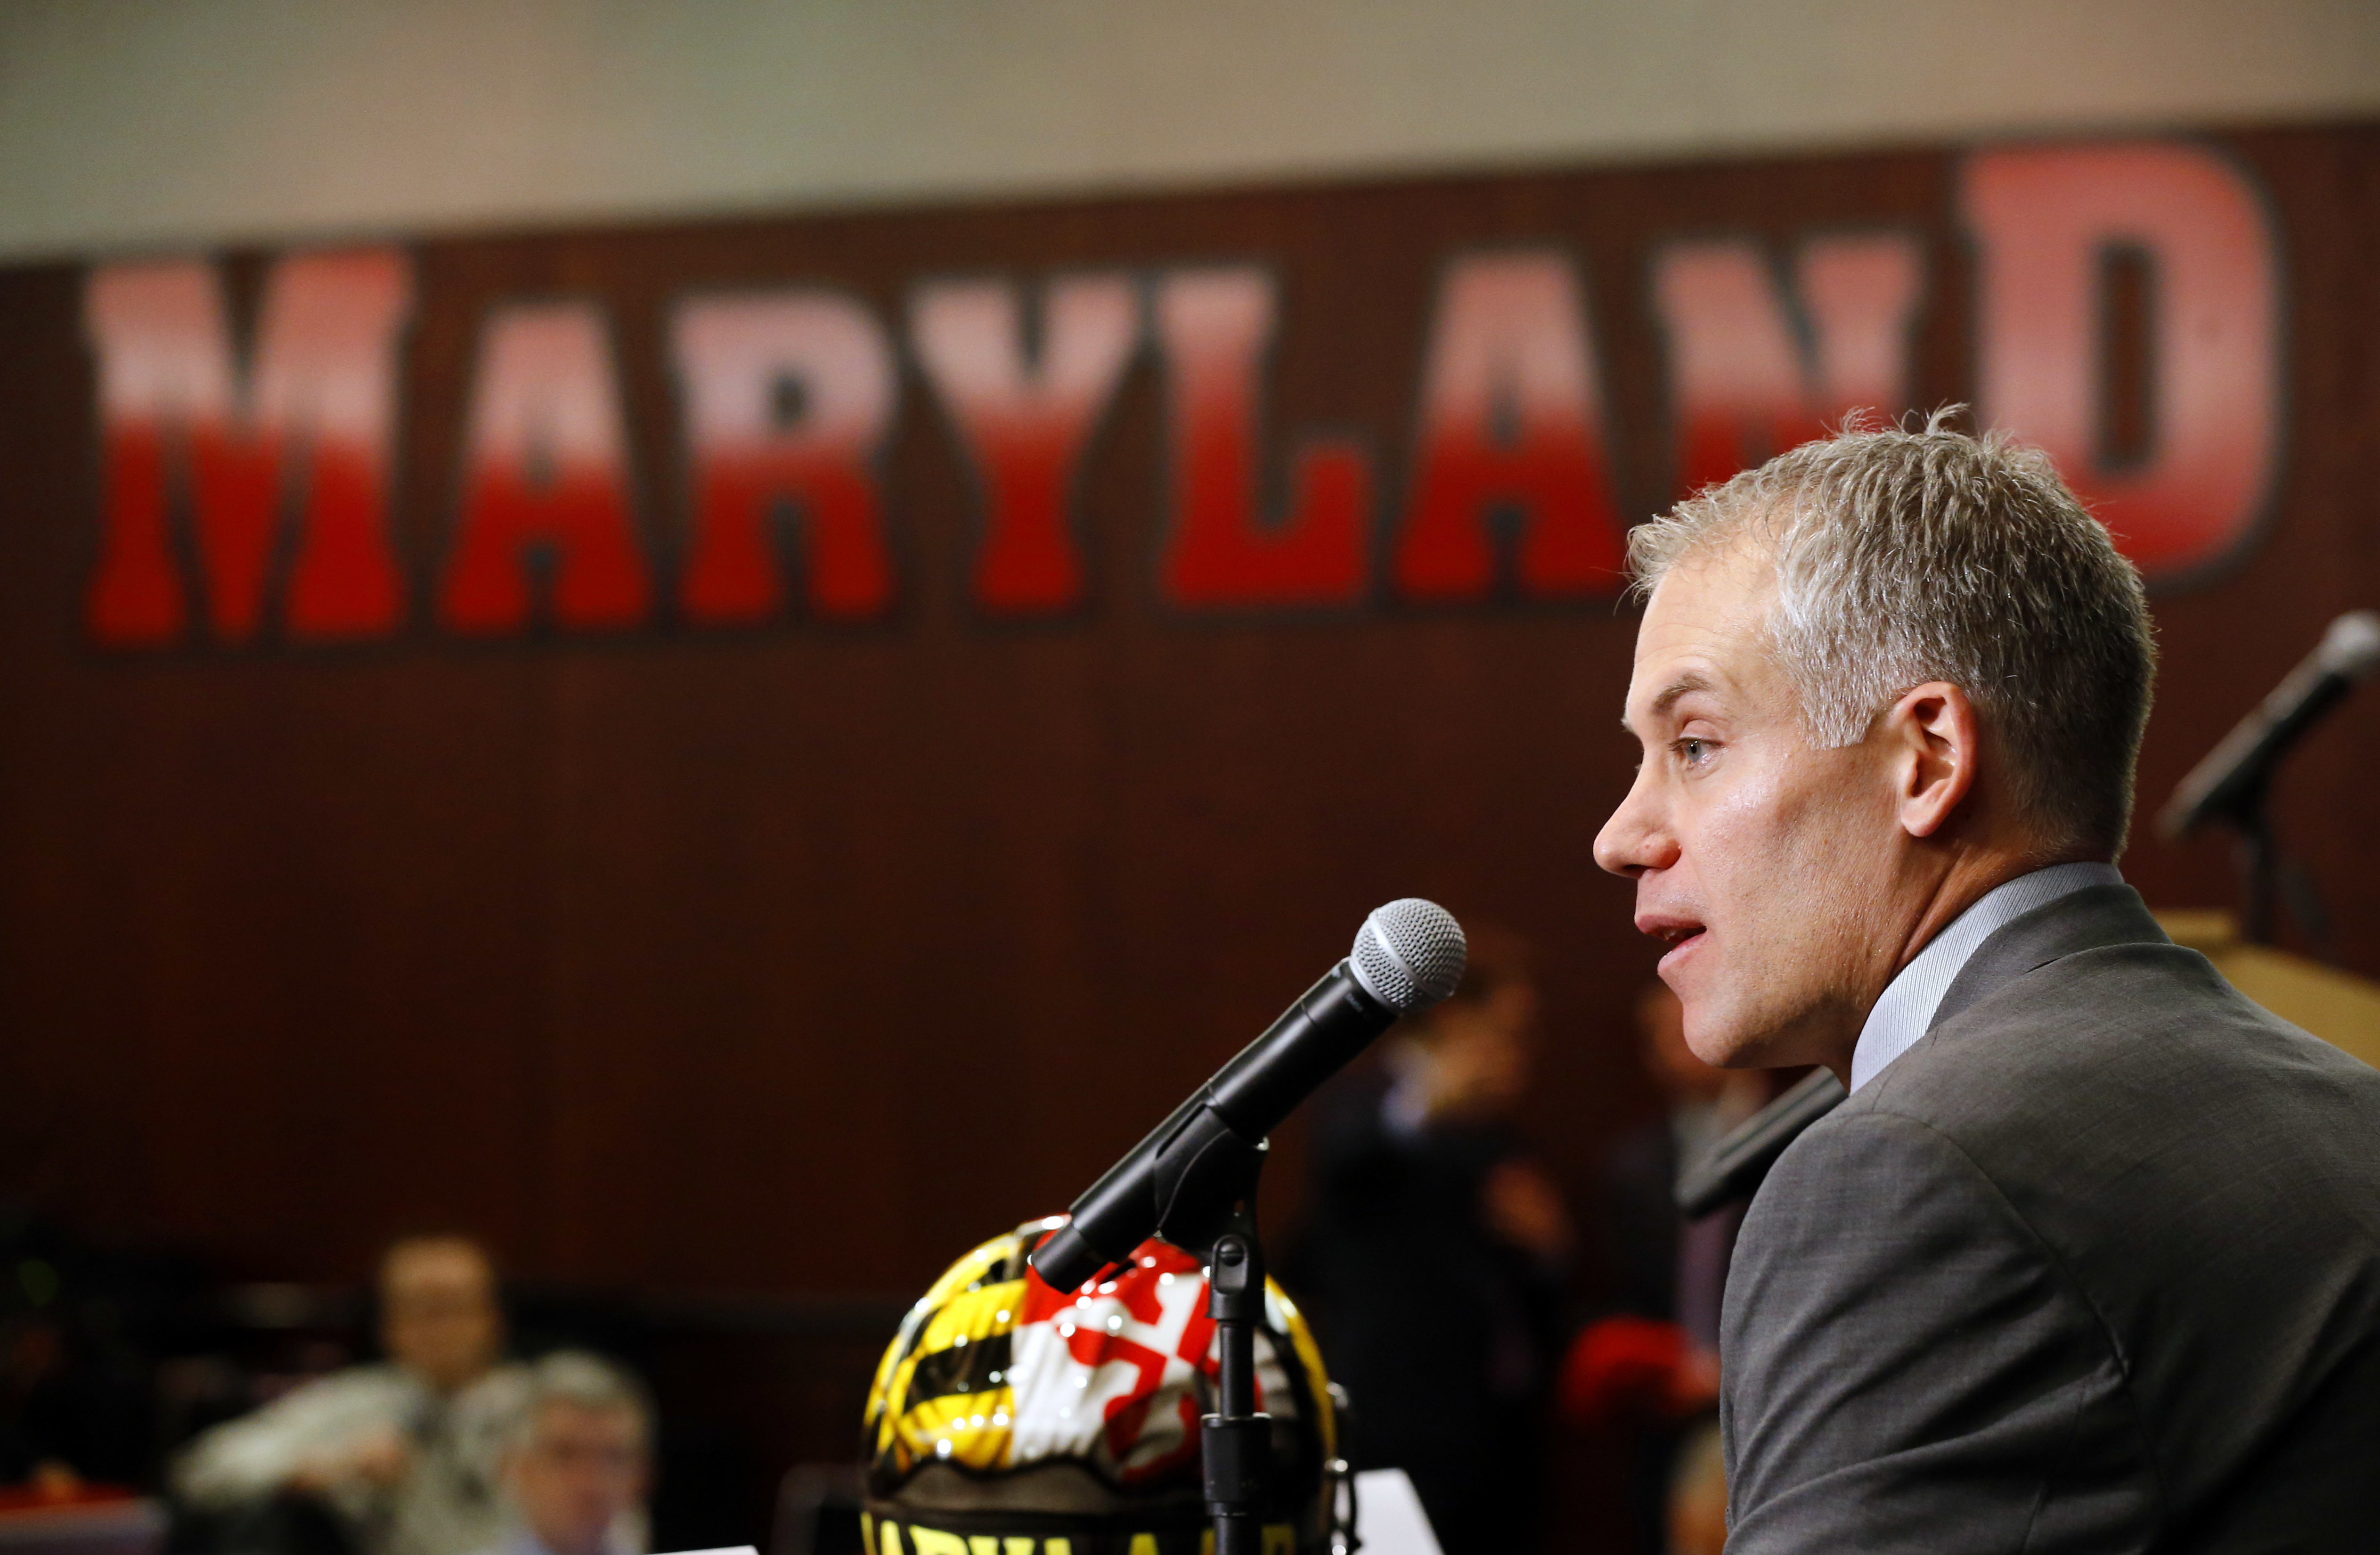 FILE - In this Dec. 3, 2015, file photo, D.J. Durkin speaks at a news conference after being introduced as the new head football coach at the University of Maryland, in College Park, Md. Durkin insists his first game as Maryland's football coach isn't abo